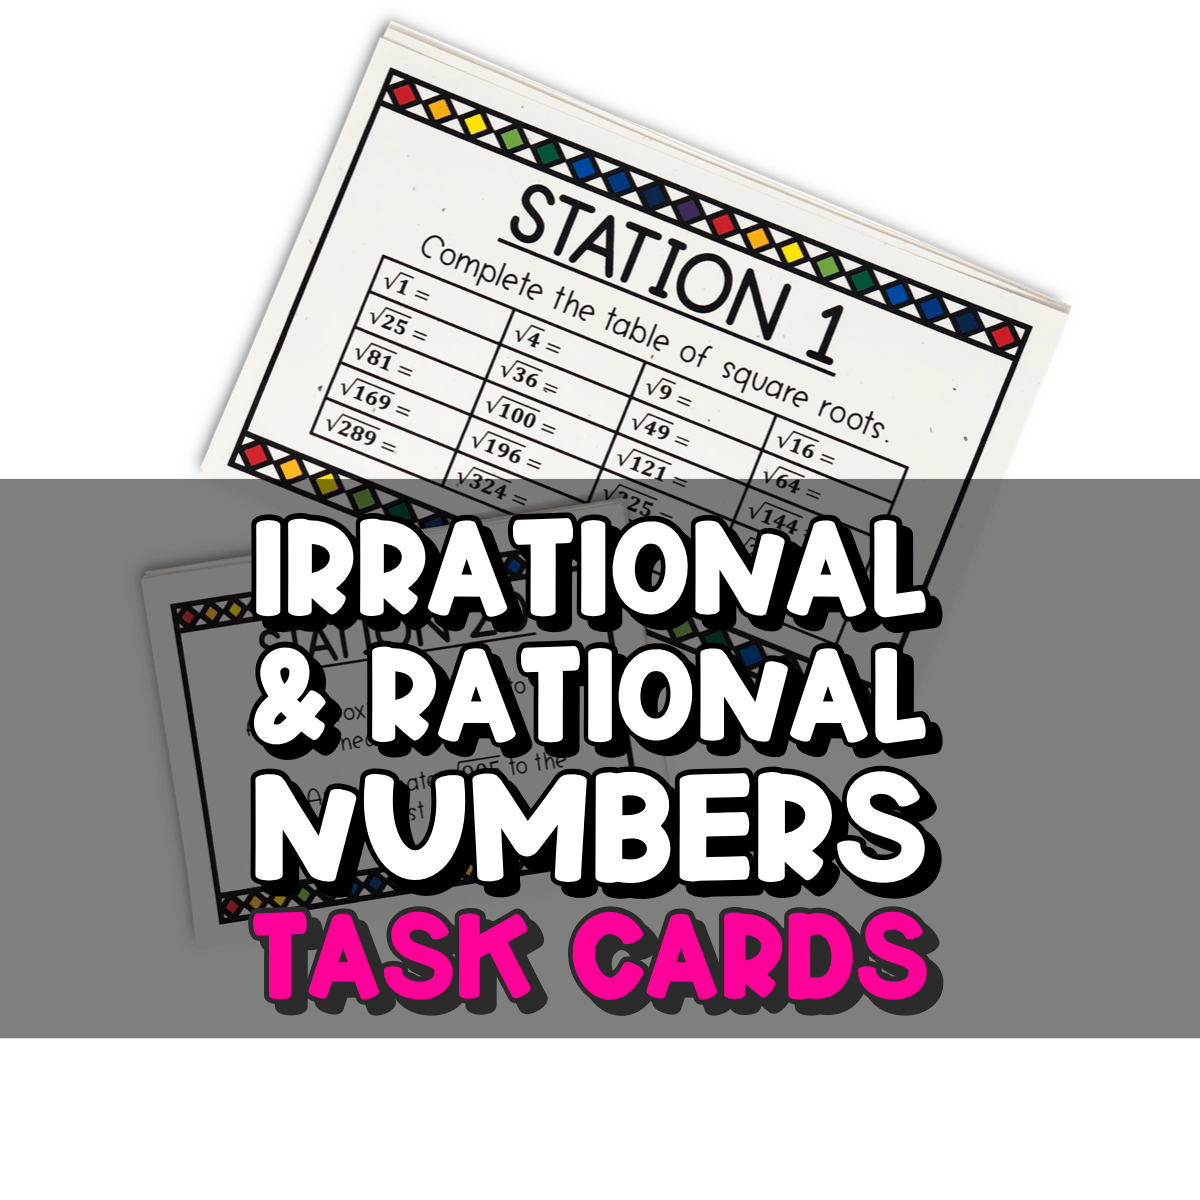 Irrational and Rational Numbers Task Cards